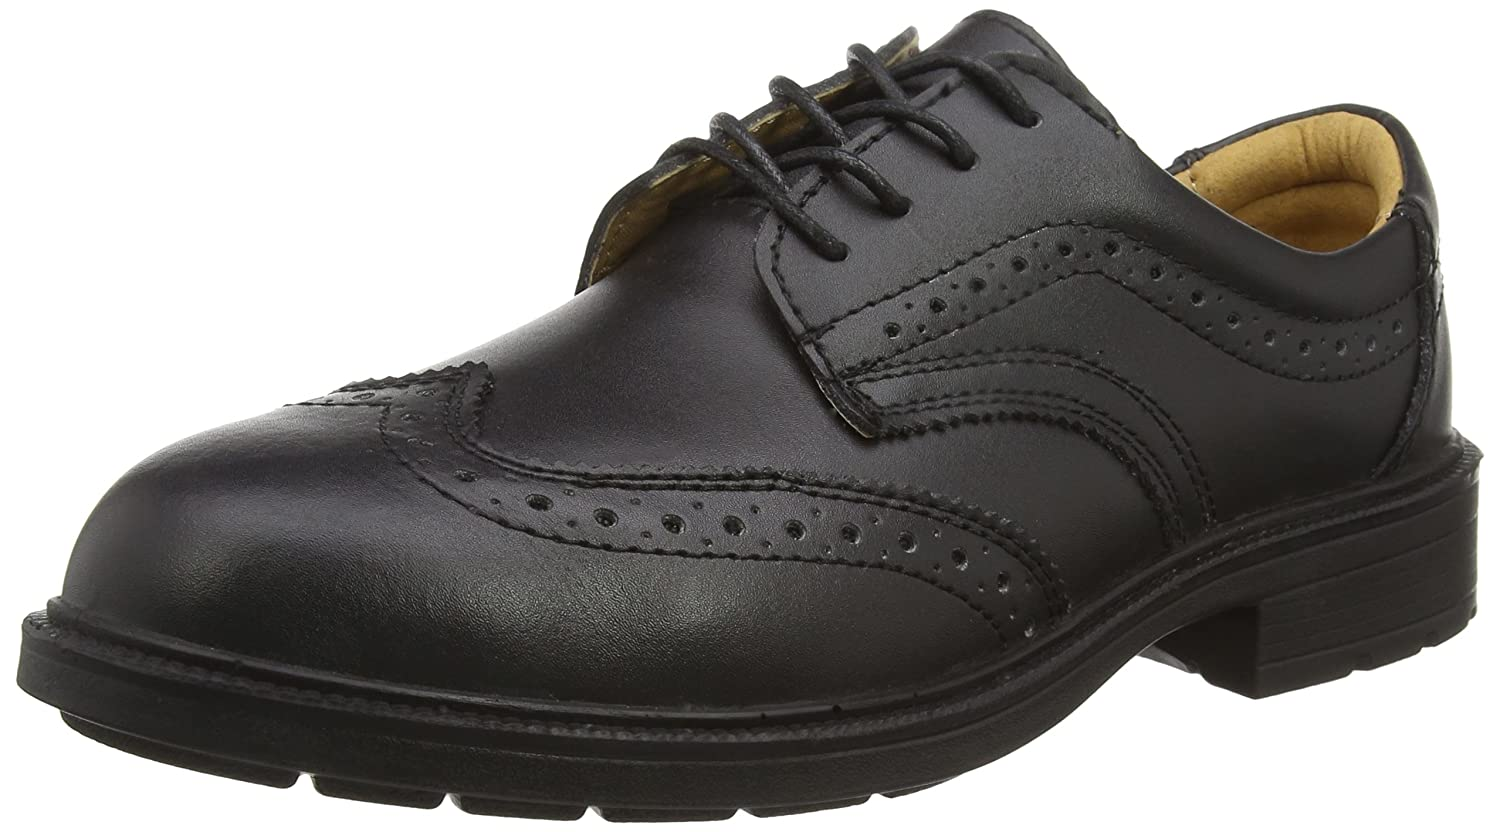 Amblers Steel FS44 Safety Brogue/Mens Shoes/Safety Shoes Amblers Safety